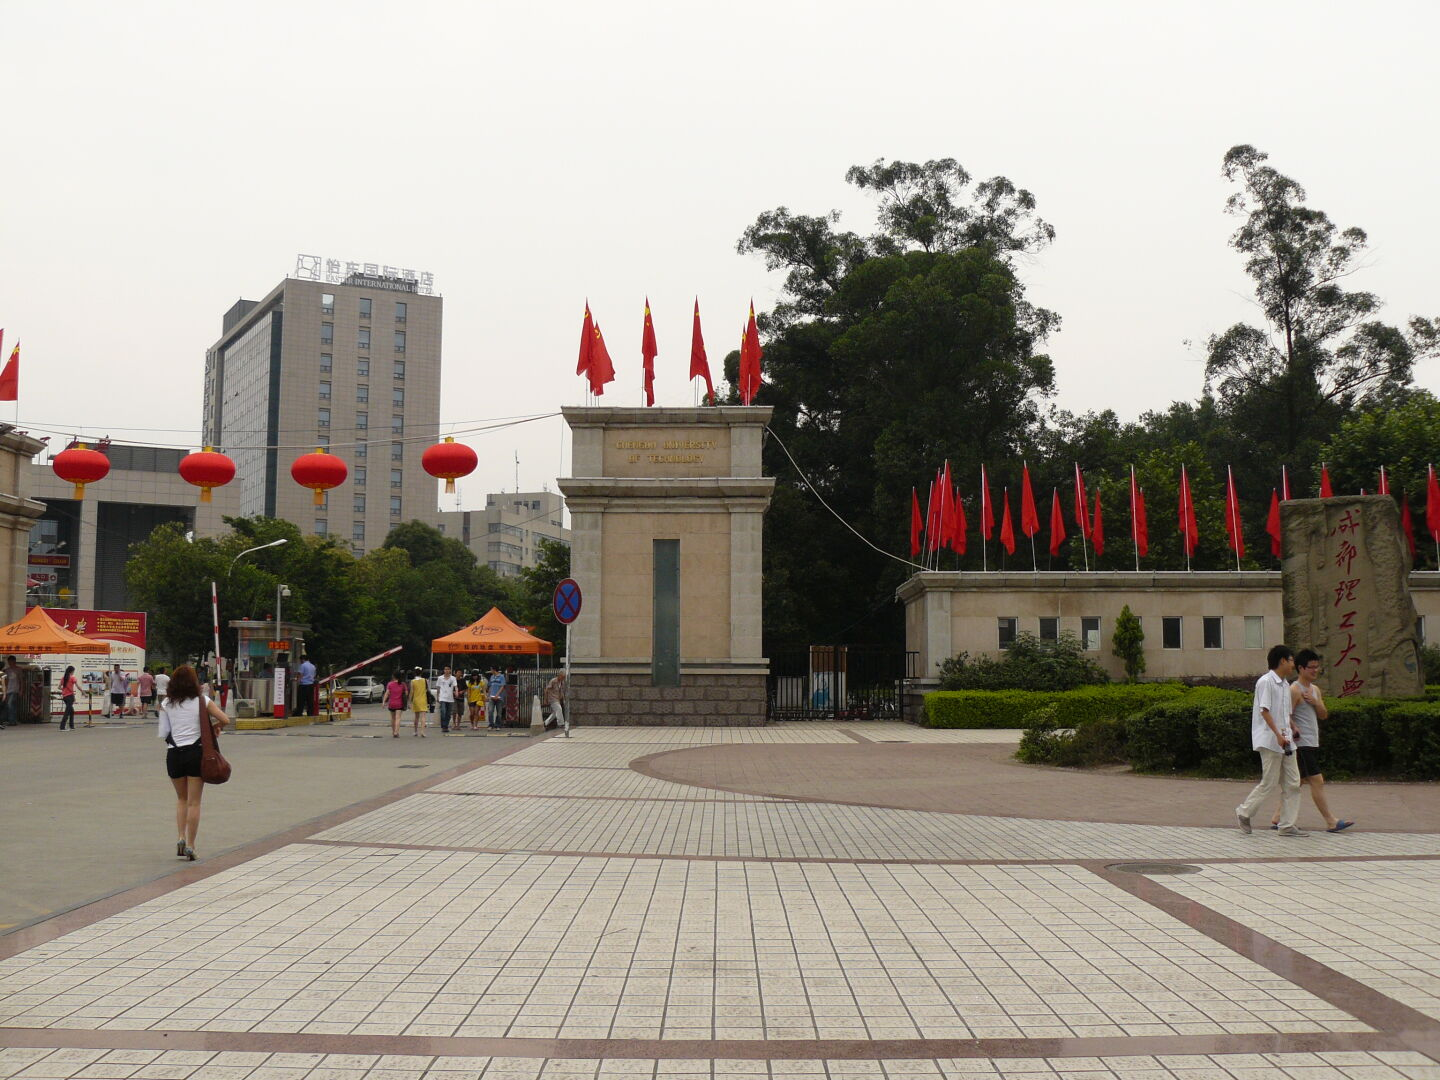 I finished my tour in the Chengdu Bookworm, where I had an ice chocolate, a cheeseburger (delicious!) and some Jasmine tea, before I took a taxi  back to the Chengdu University of Technology (paying only 26 Yuan this time). This is the main entrance of the Campus.